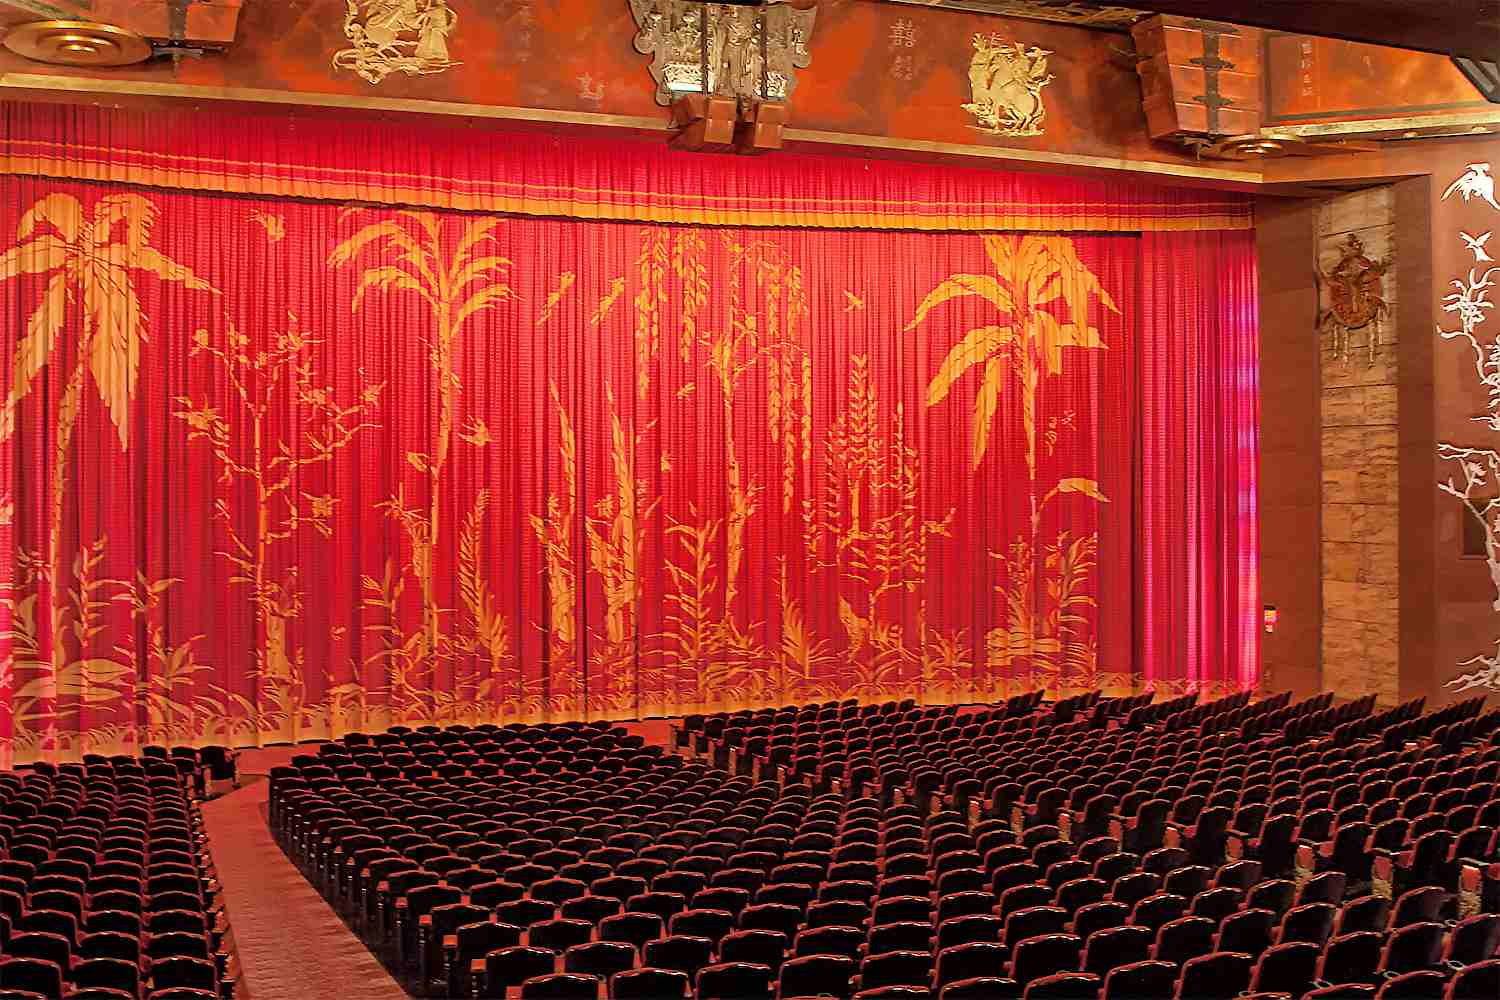 Inside the Chinese Theatre in Hollywood